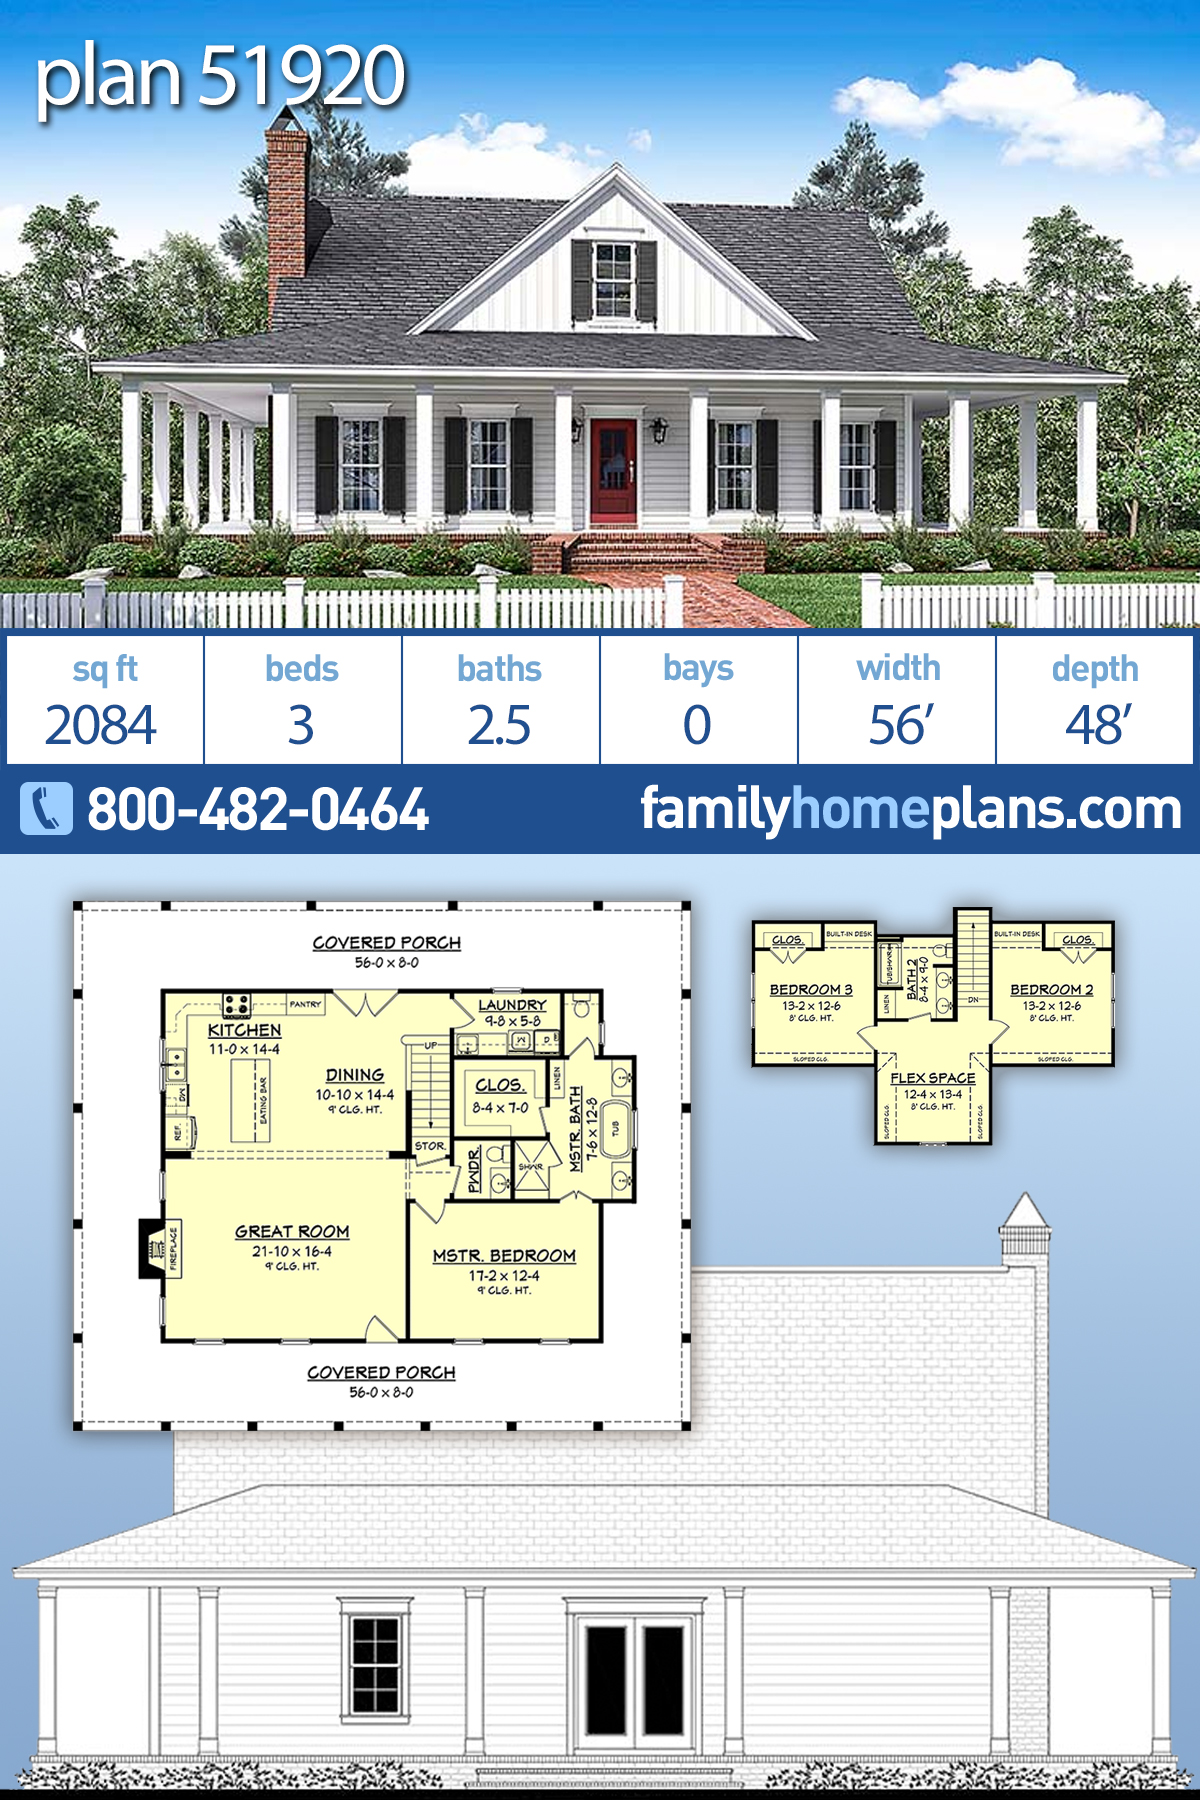 Cottage, Country, Craftsman, Southern, Traditional House Plan 51920 with 3 Beds, 3 Baths